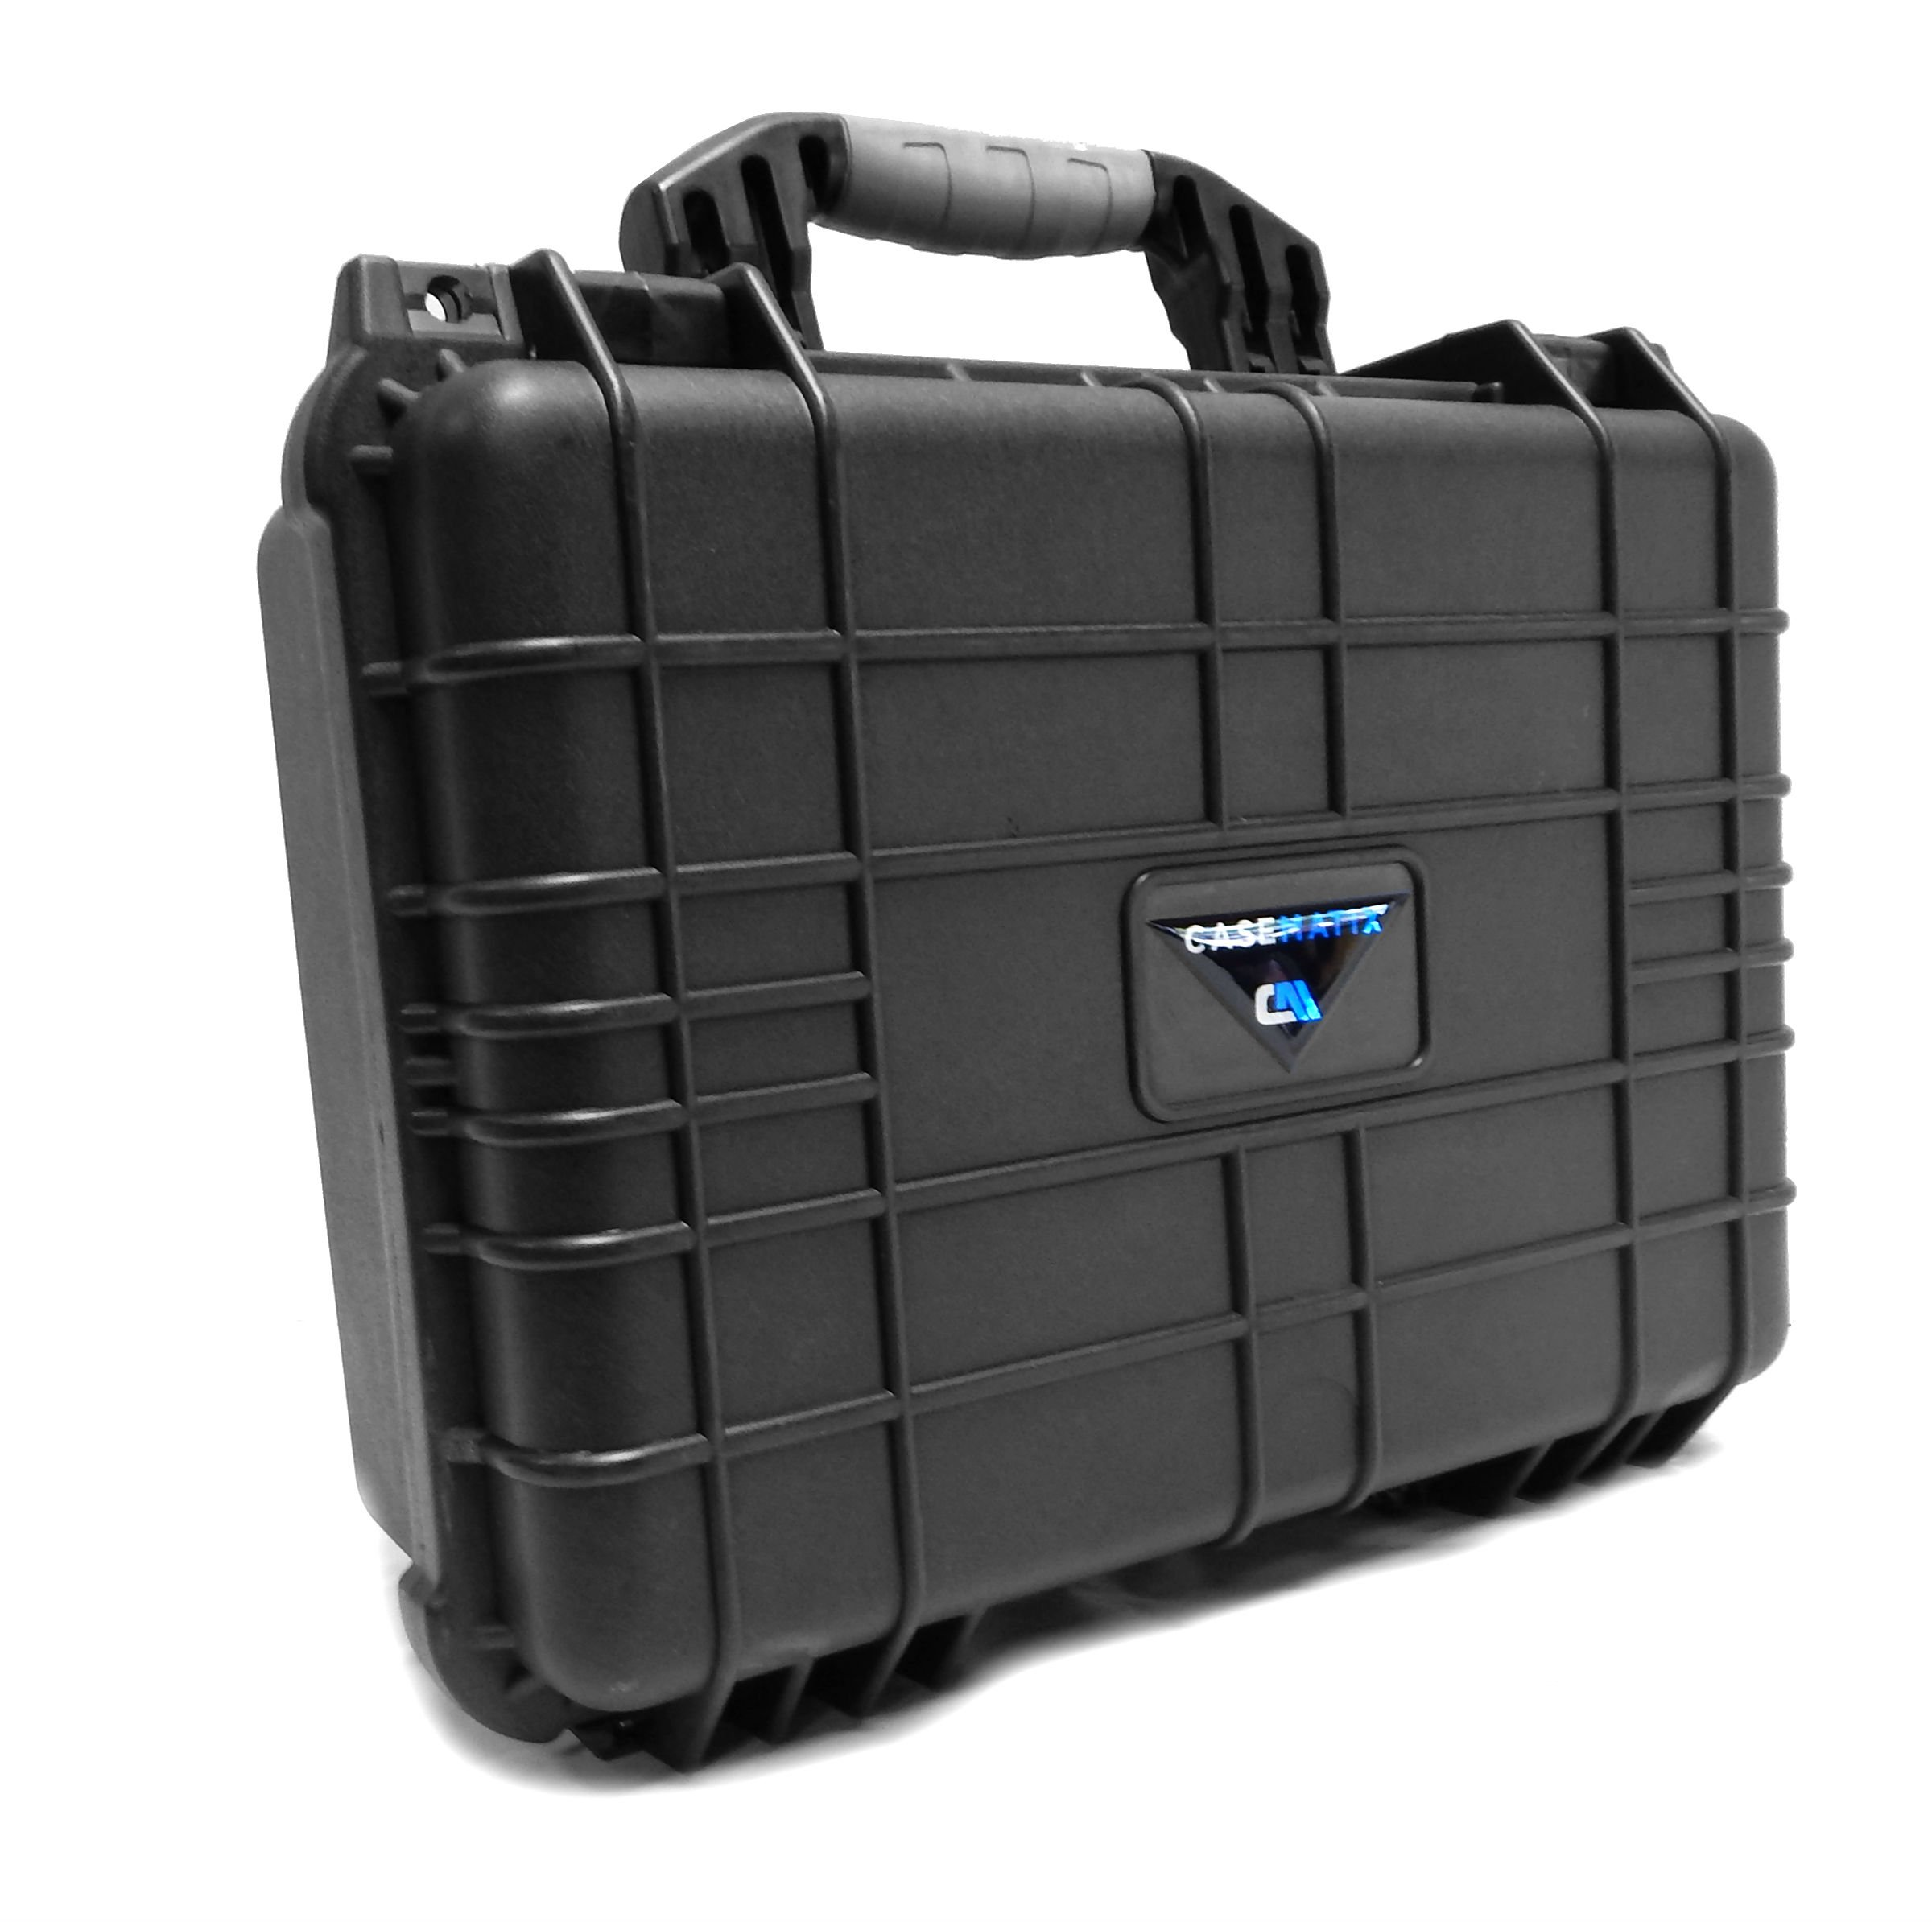 CASEMATIX Armor Travel Carrying Case (16'') for Mixer or Controller - Fits Behringer XENYX 1202FX / 802 / Q802USB / 1002FX / QX1002USB / 1002B / 1002 / Q1002USB / QX602MP3 / 1202